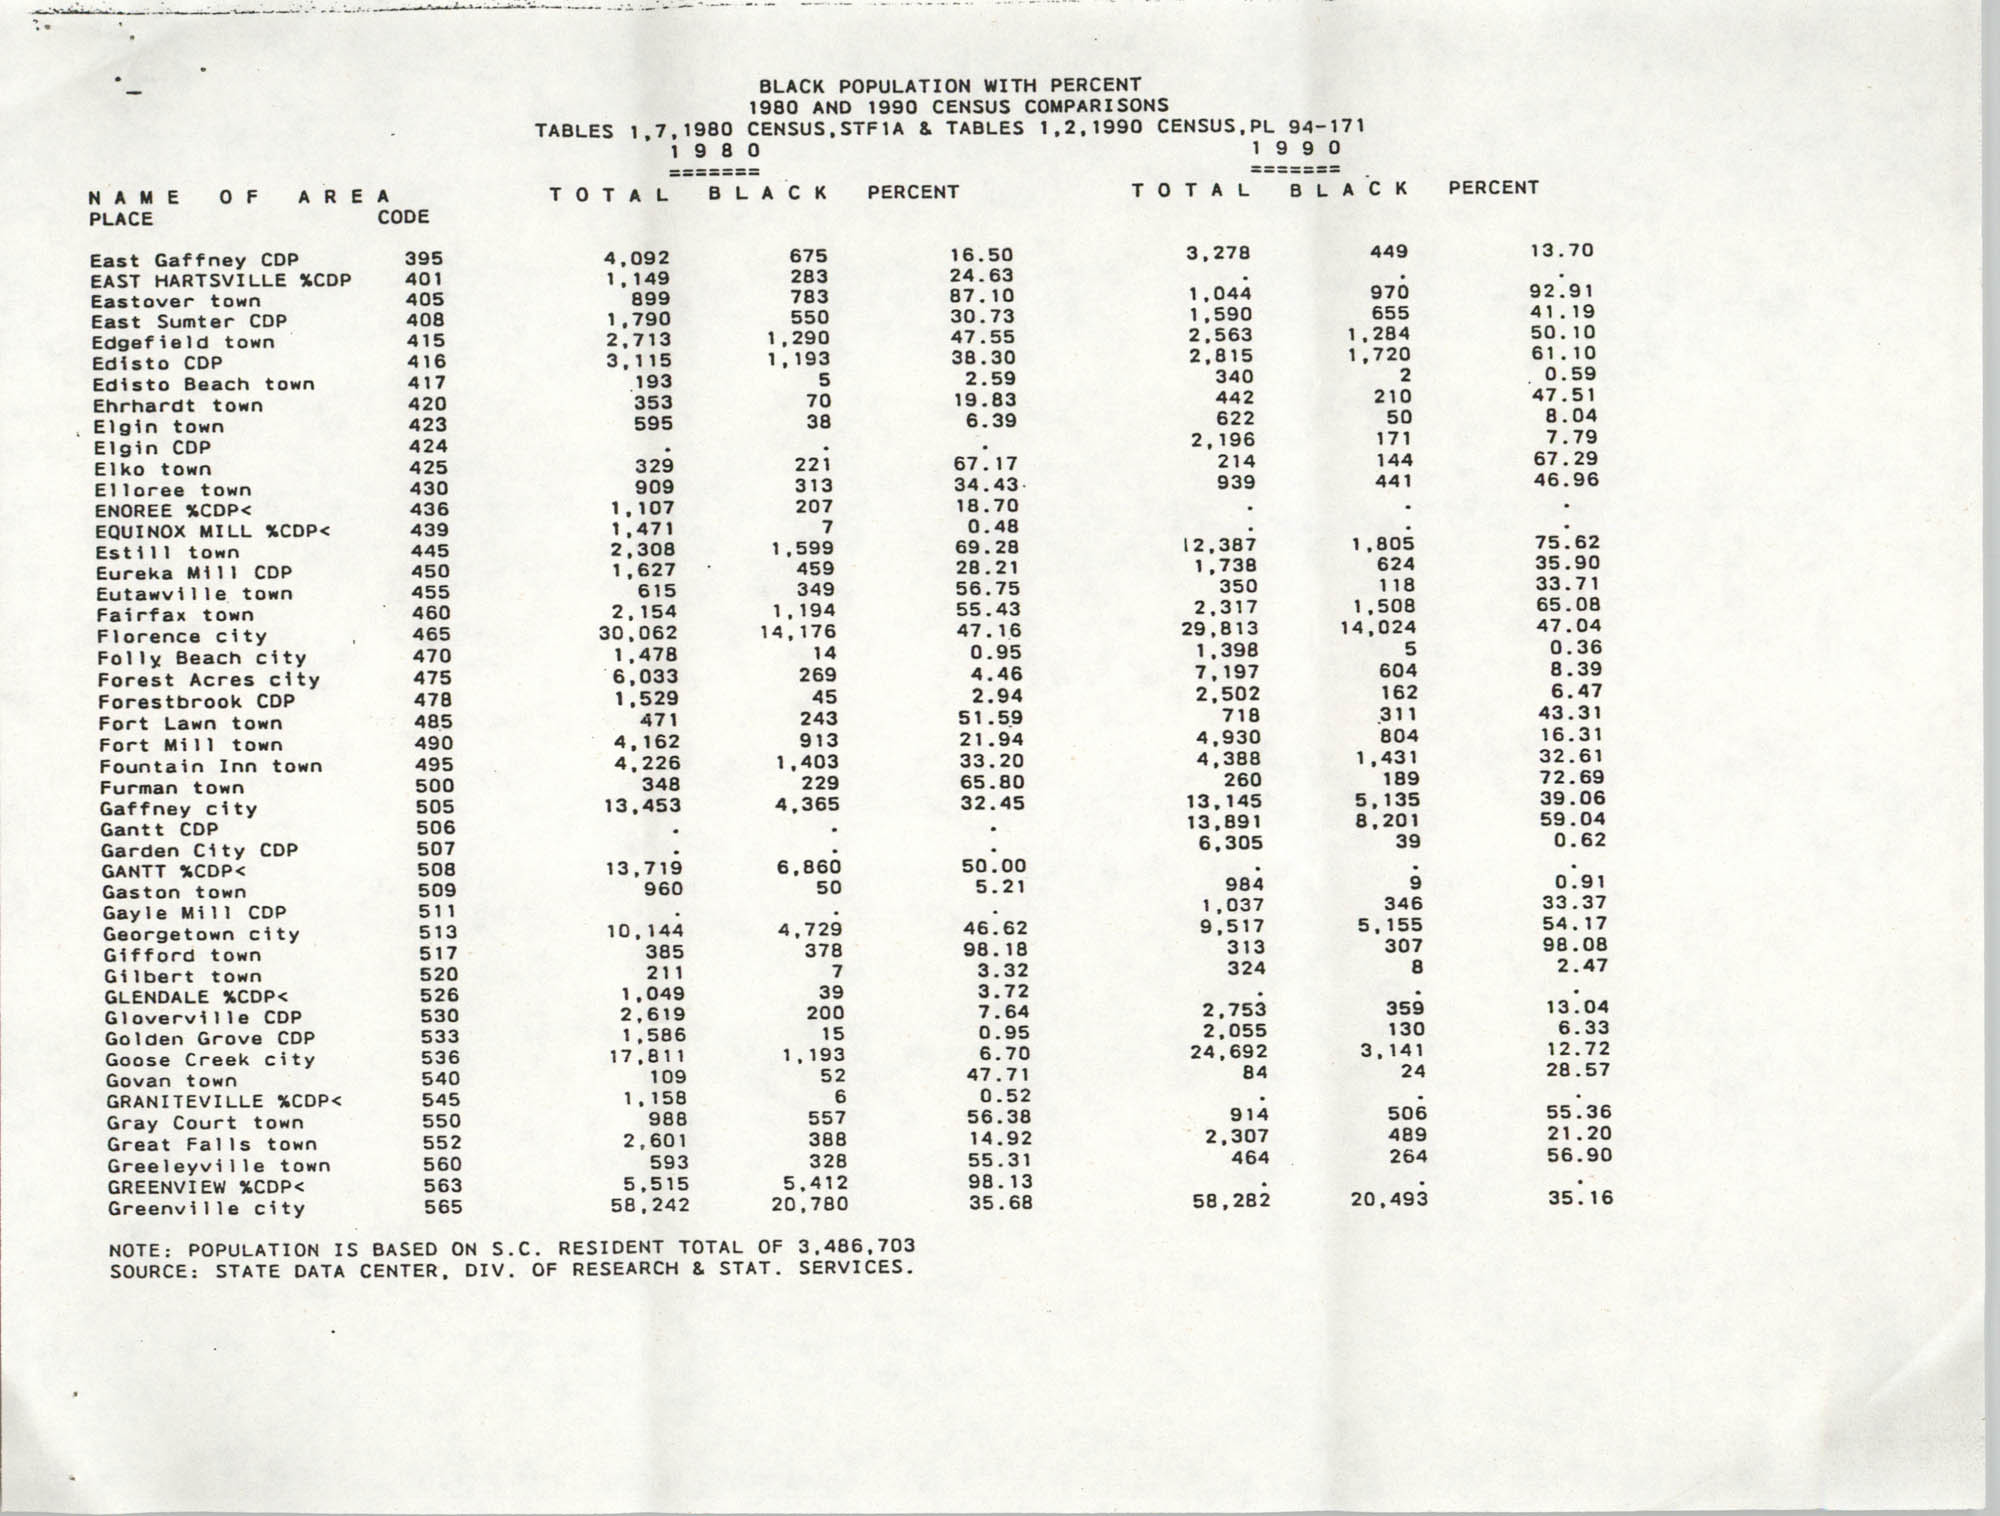 Black Population with Percent, 1980 and 1990 Census Comparison, Page 4